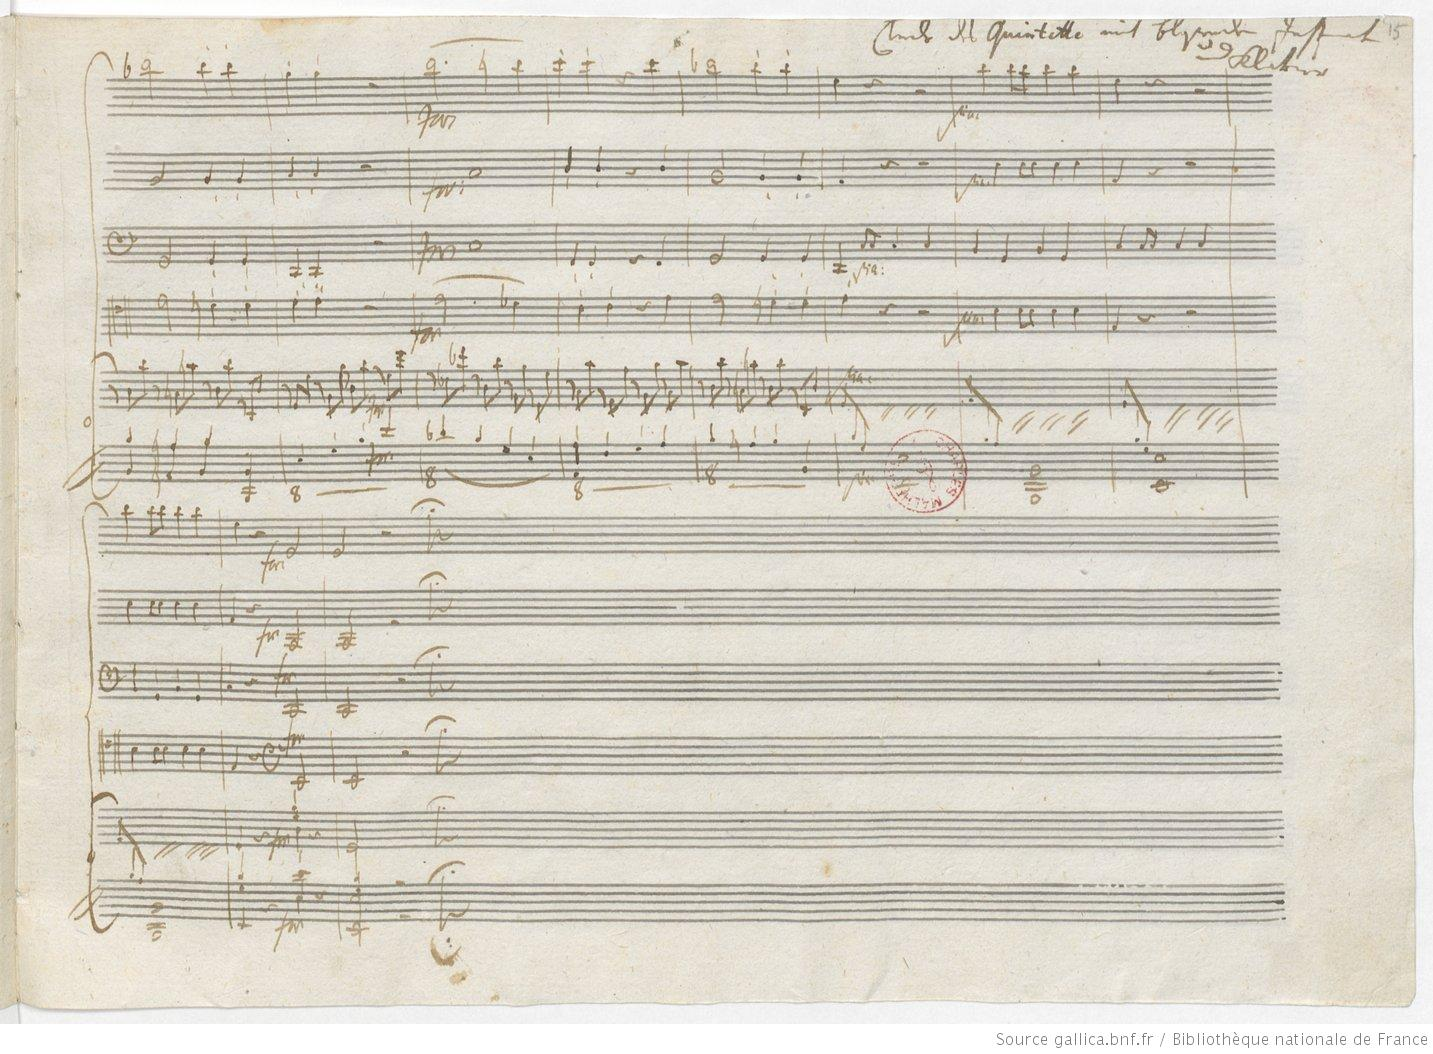 Mozart Autograph, p. 15r (Source gallica.bnf.fr/Bibliothèque nationale de France)